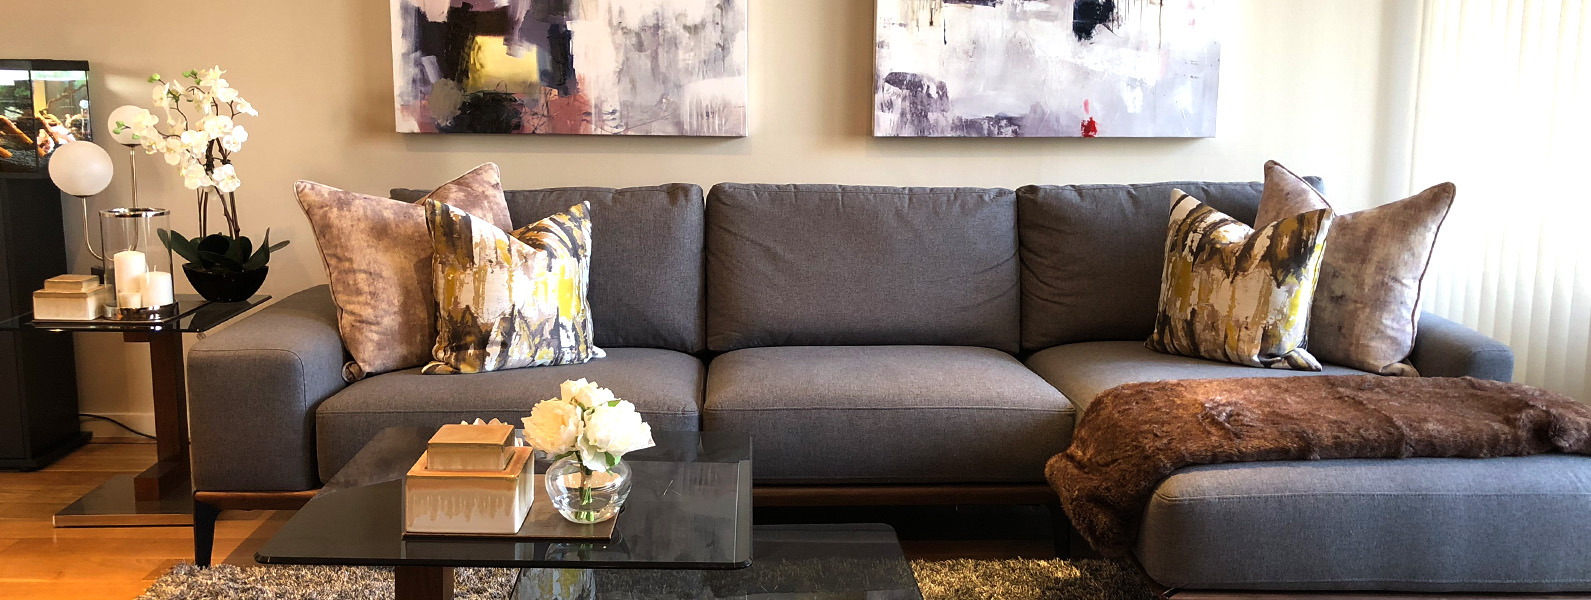 Living room, interior design and styling details by Moji Salehi at Moji Interiors in Hove